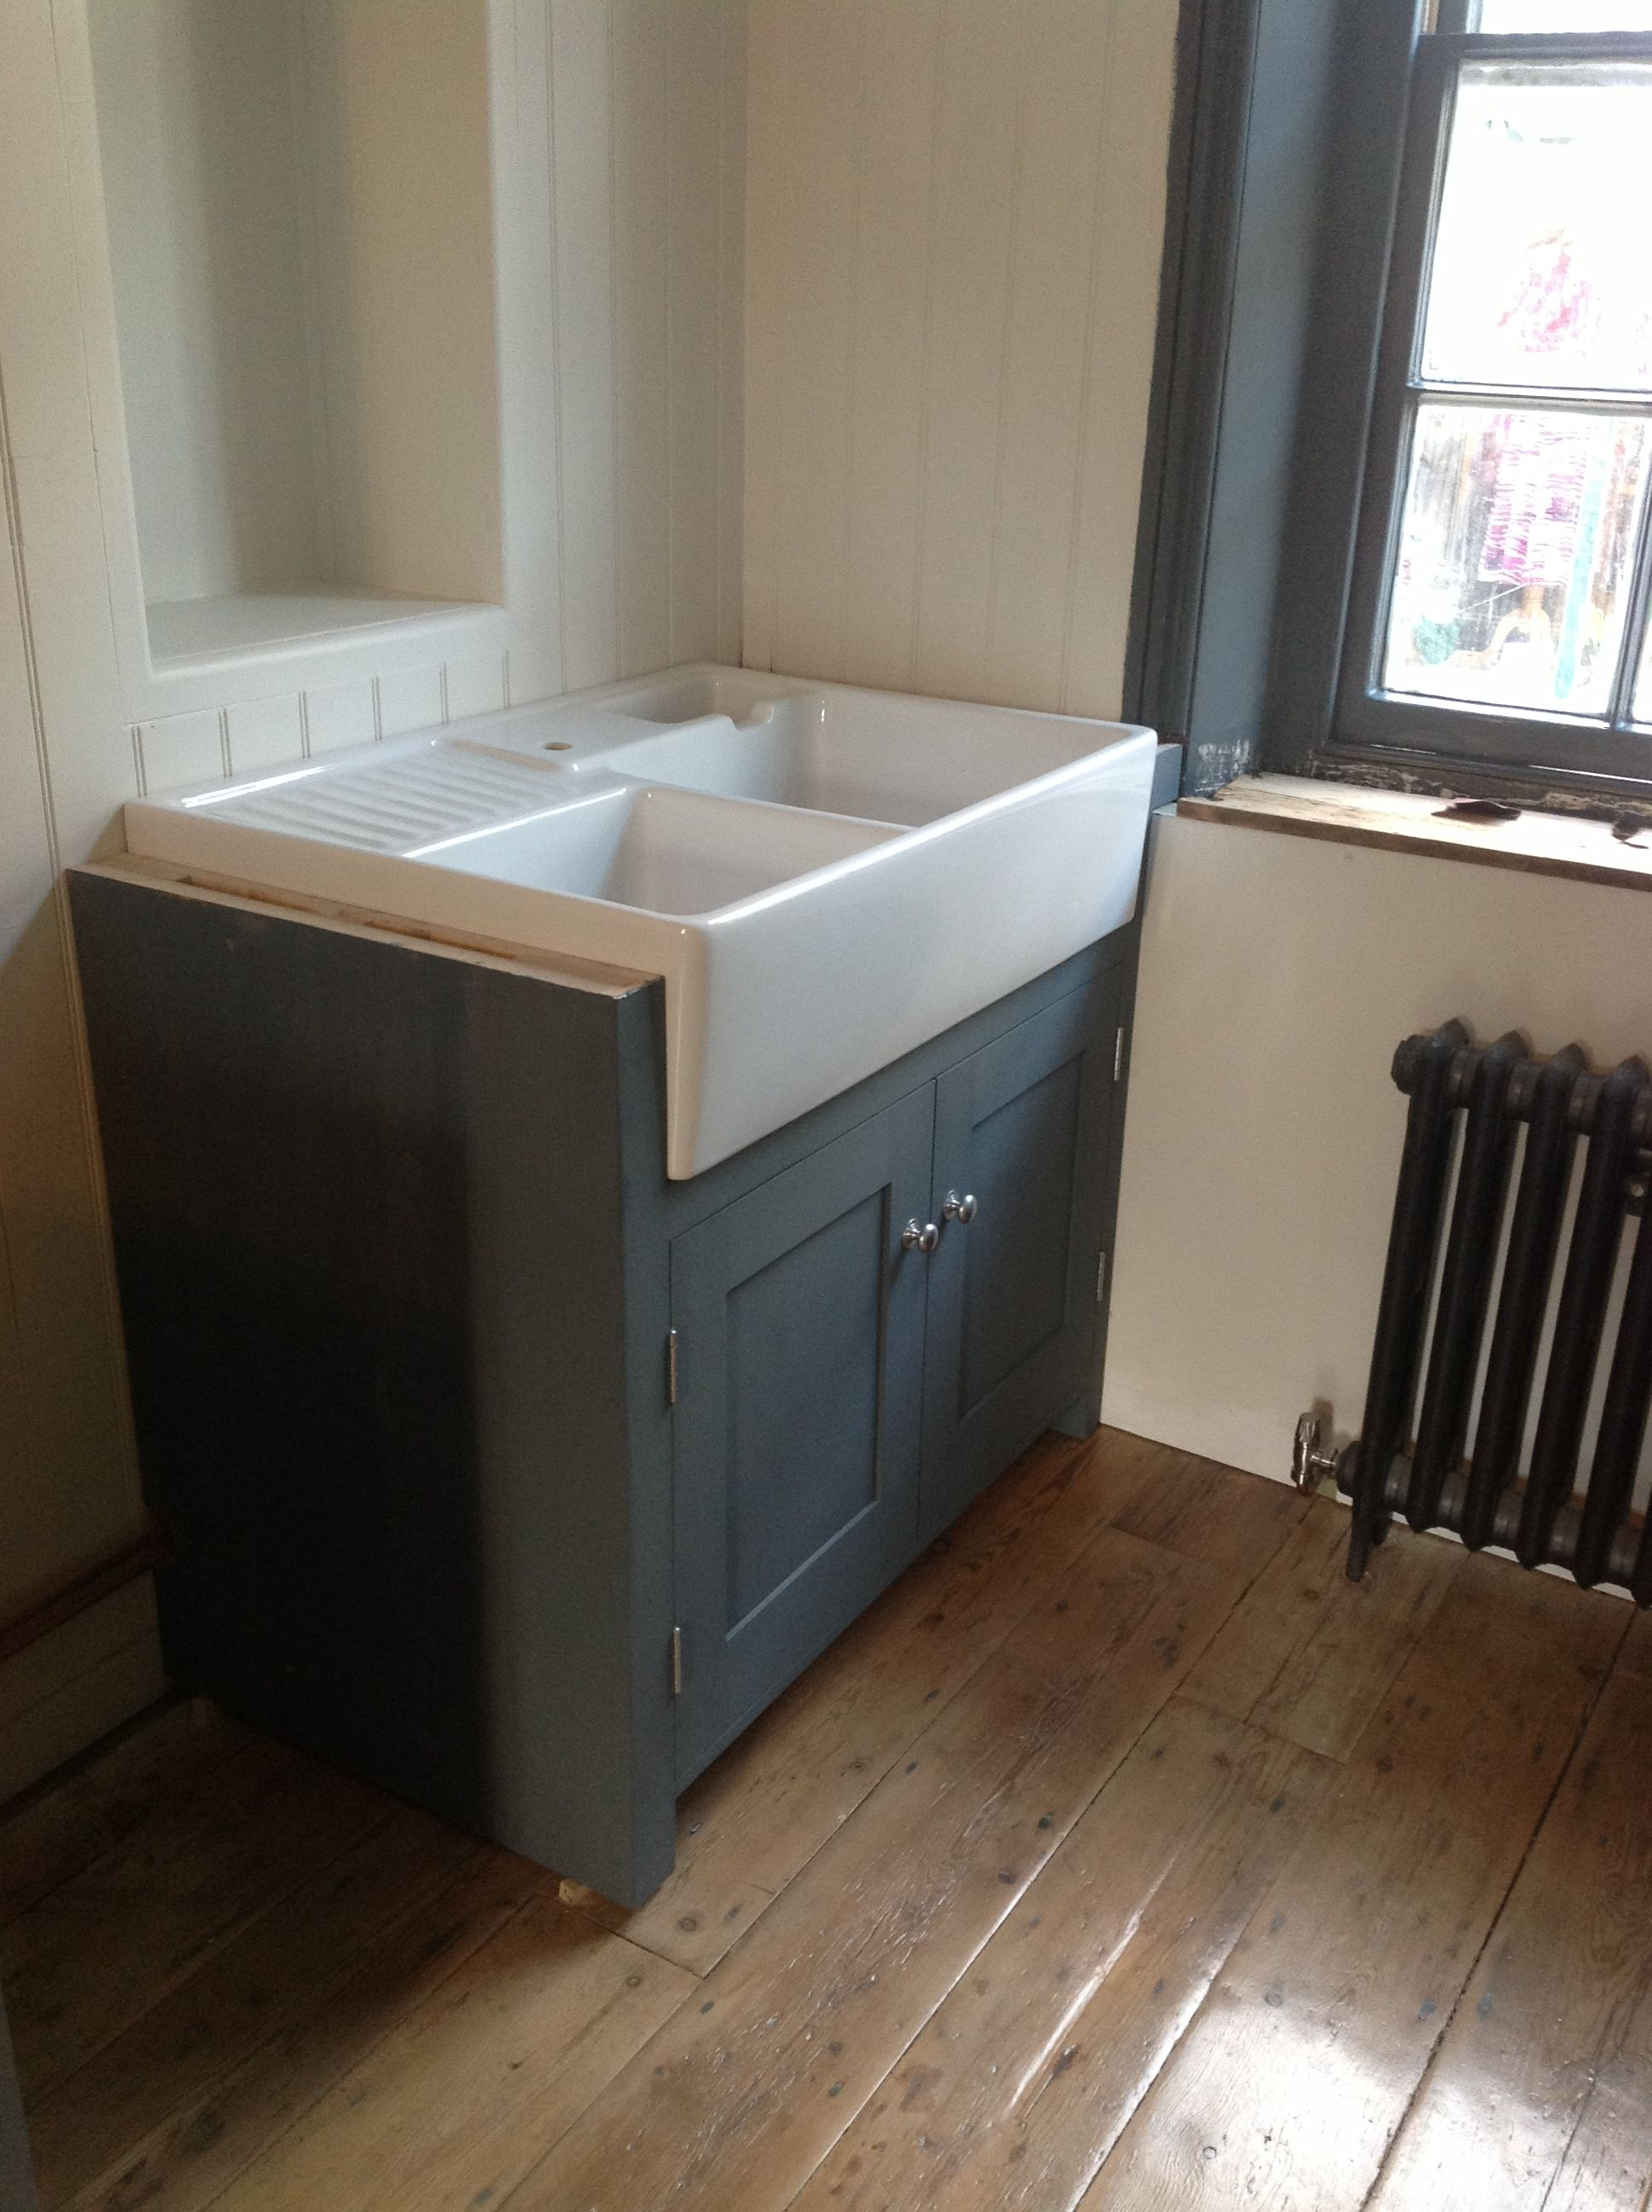 The wonderful sink has arrived